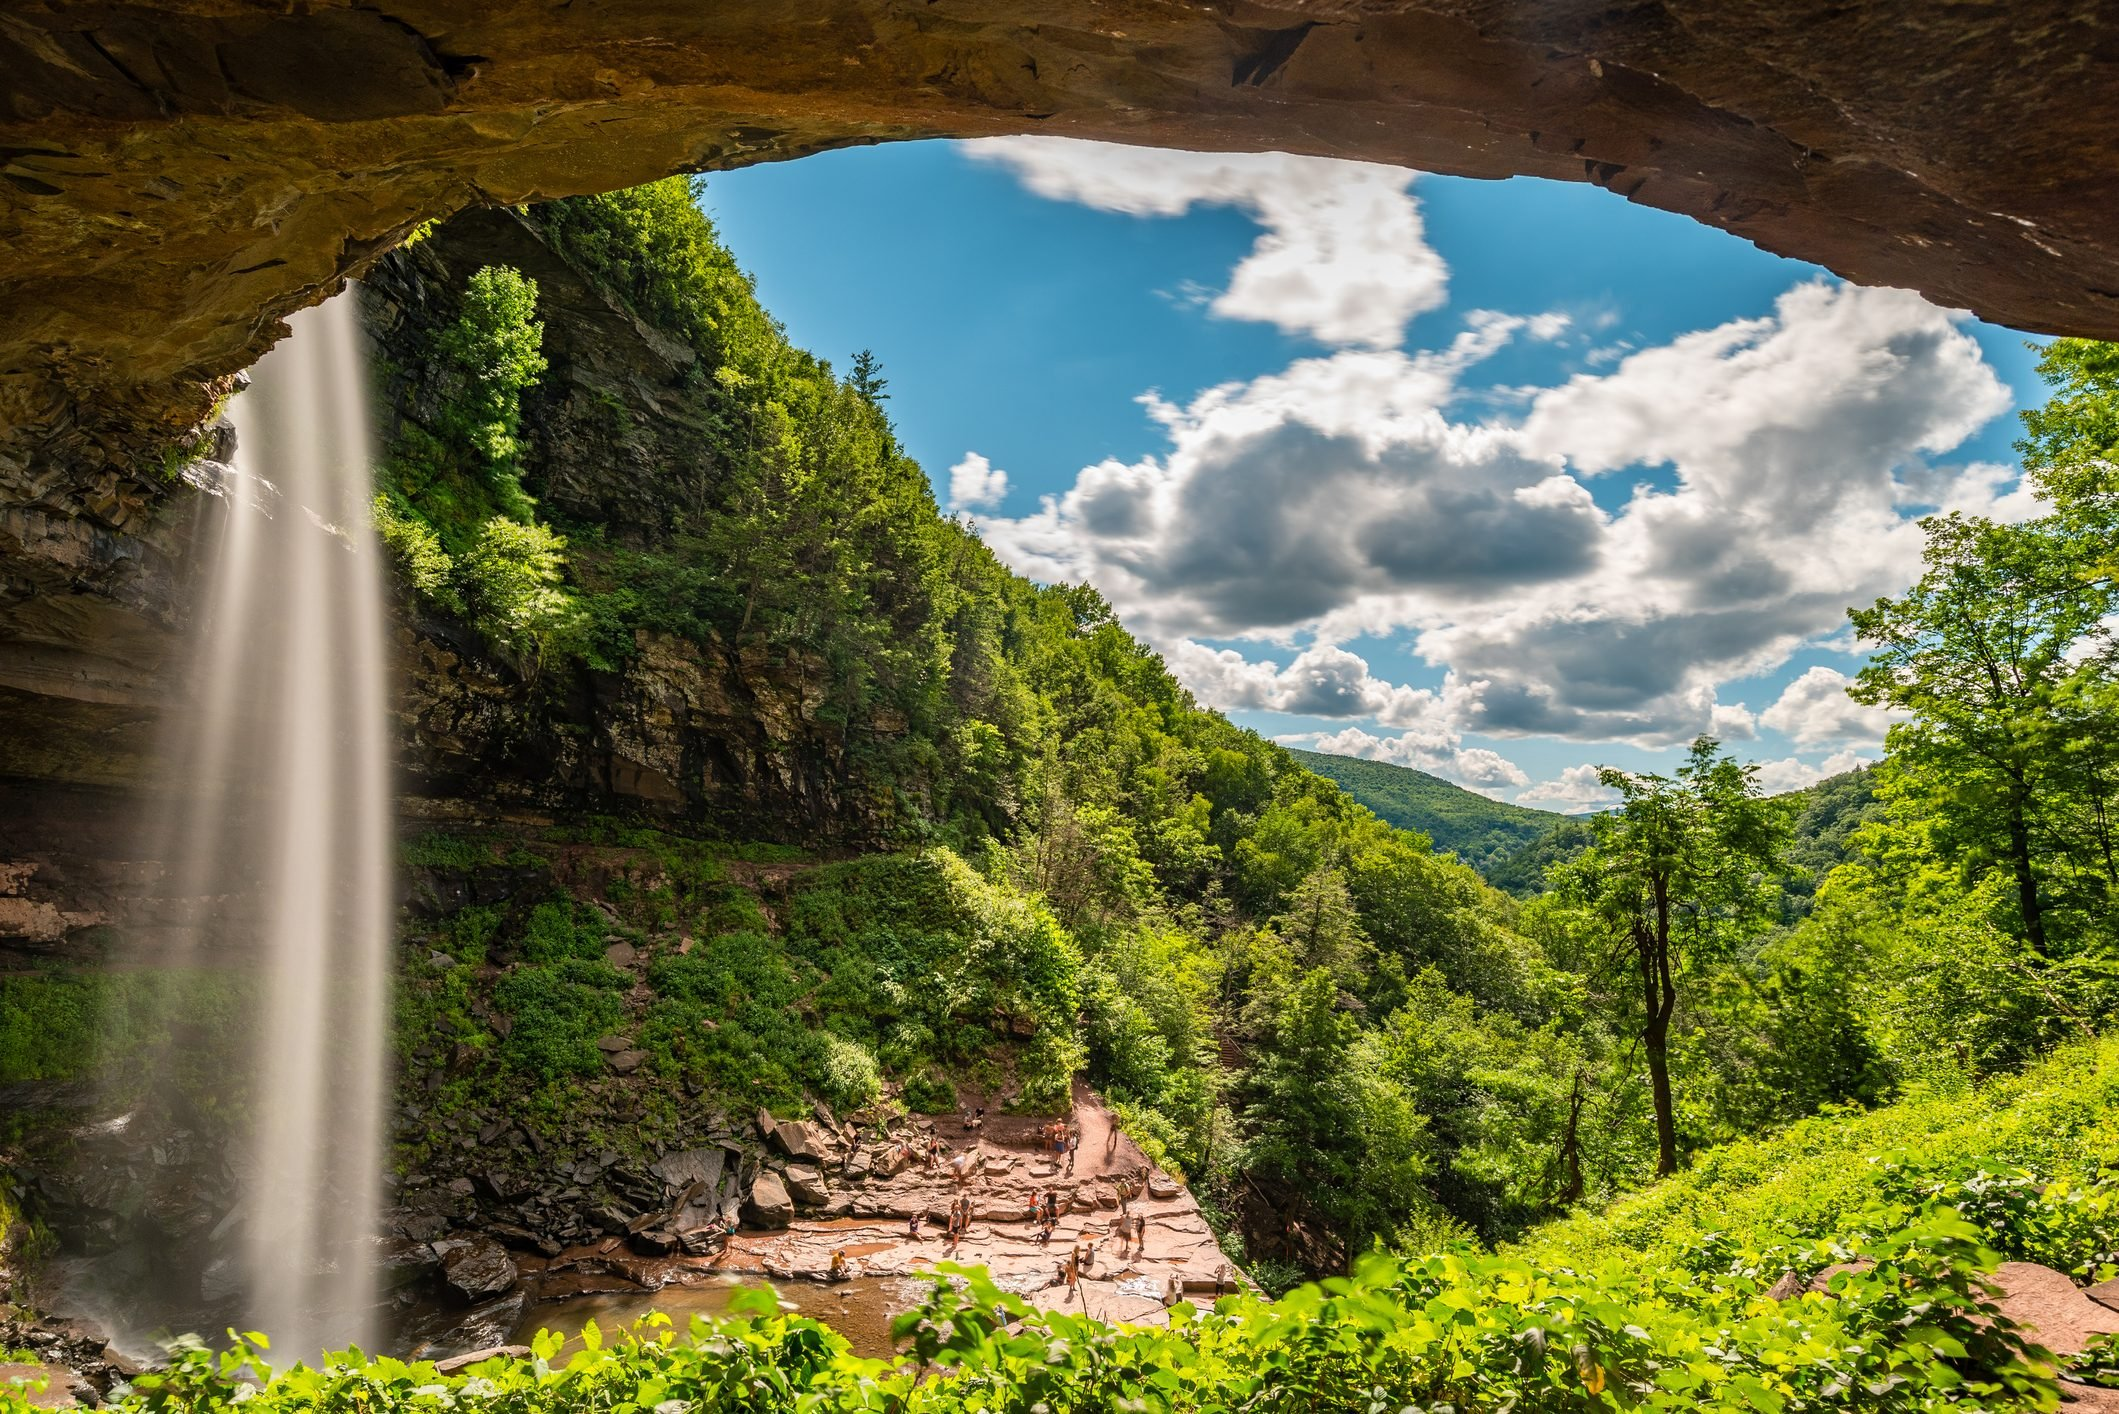 Kaaterskill waterfall in the upstate New York